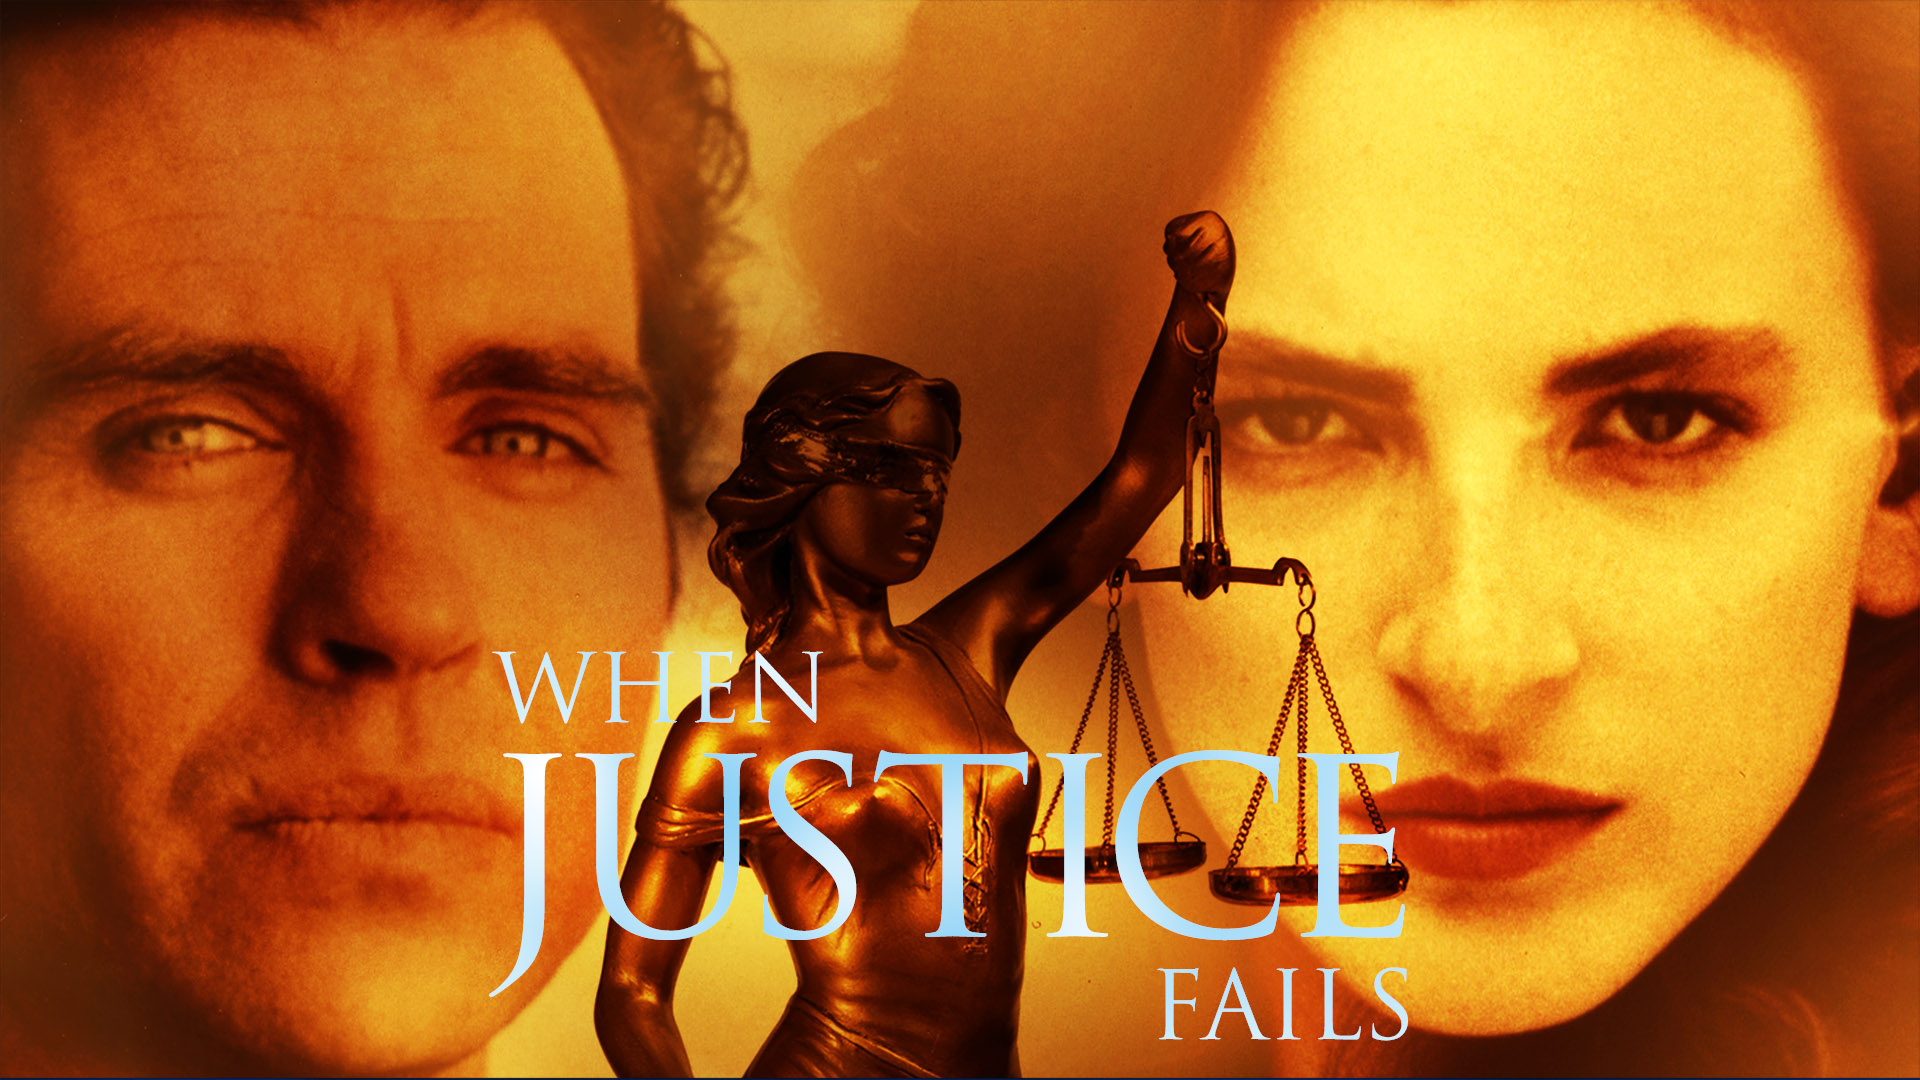 When Justice Fails